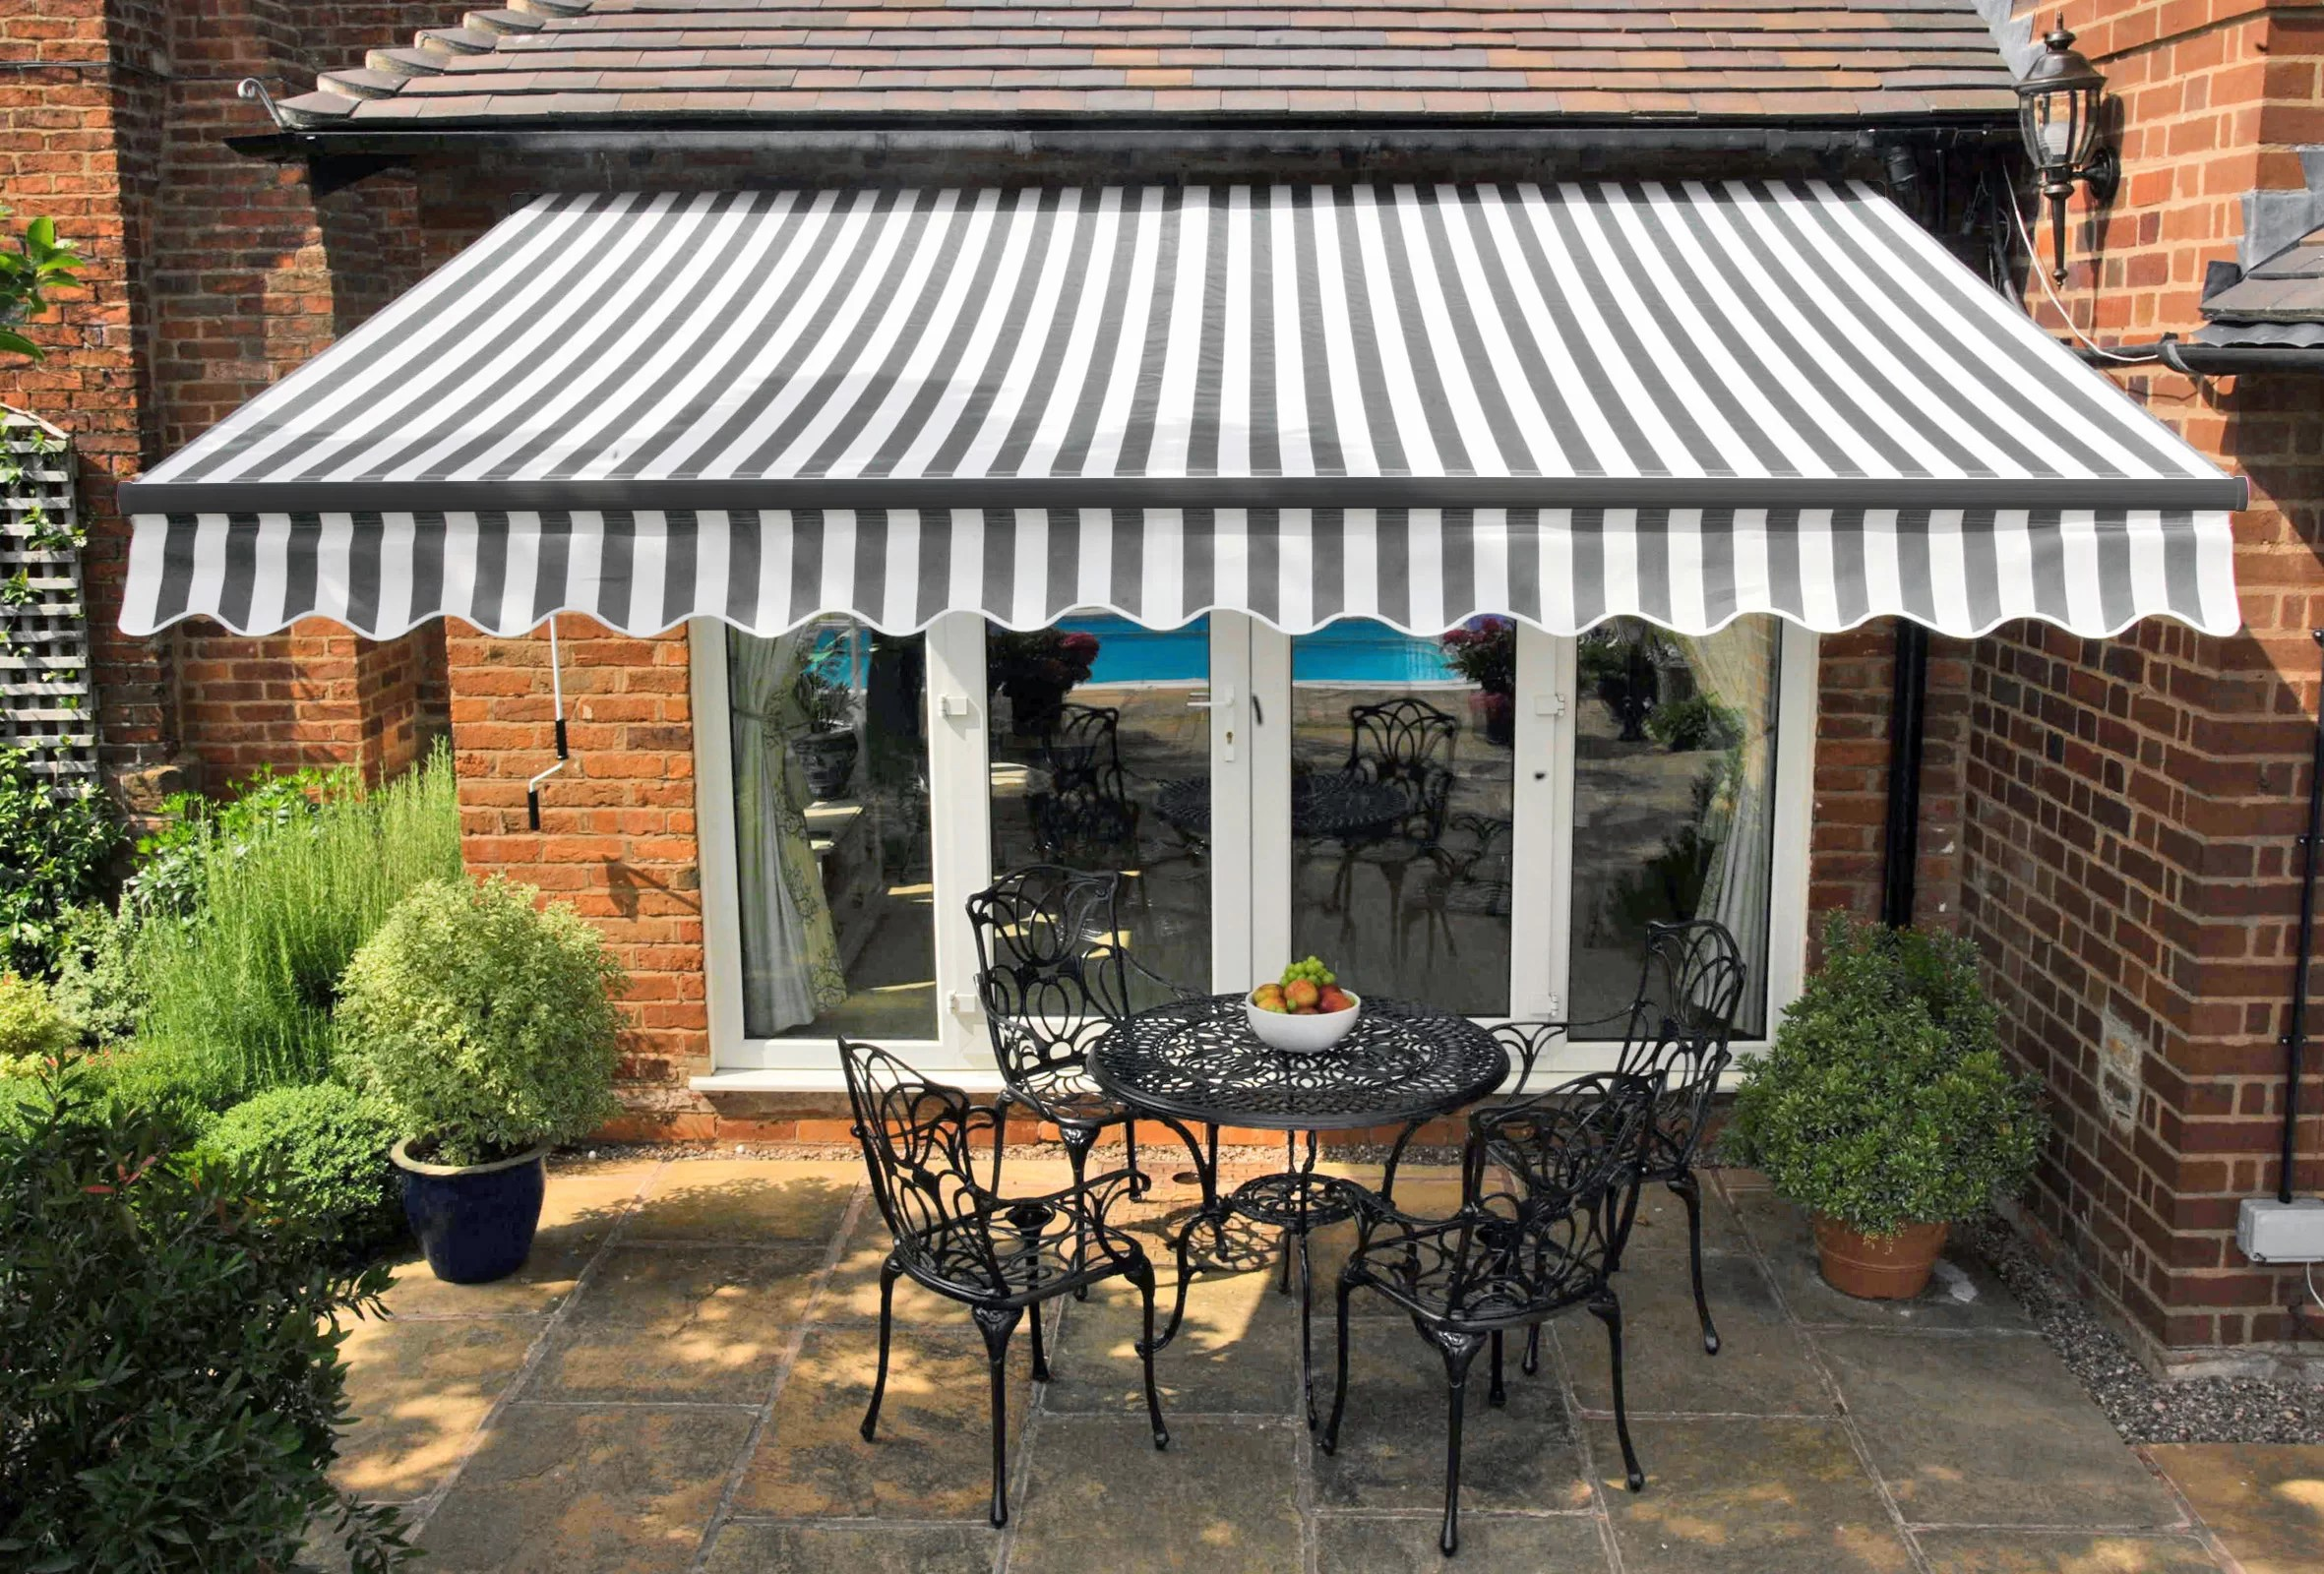 romy w 2 5 x d 2m retractable patio awning